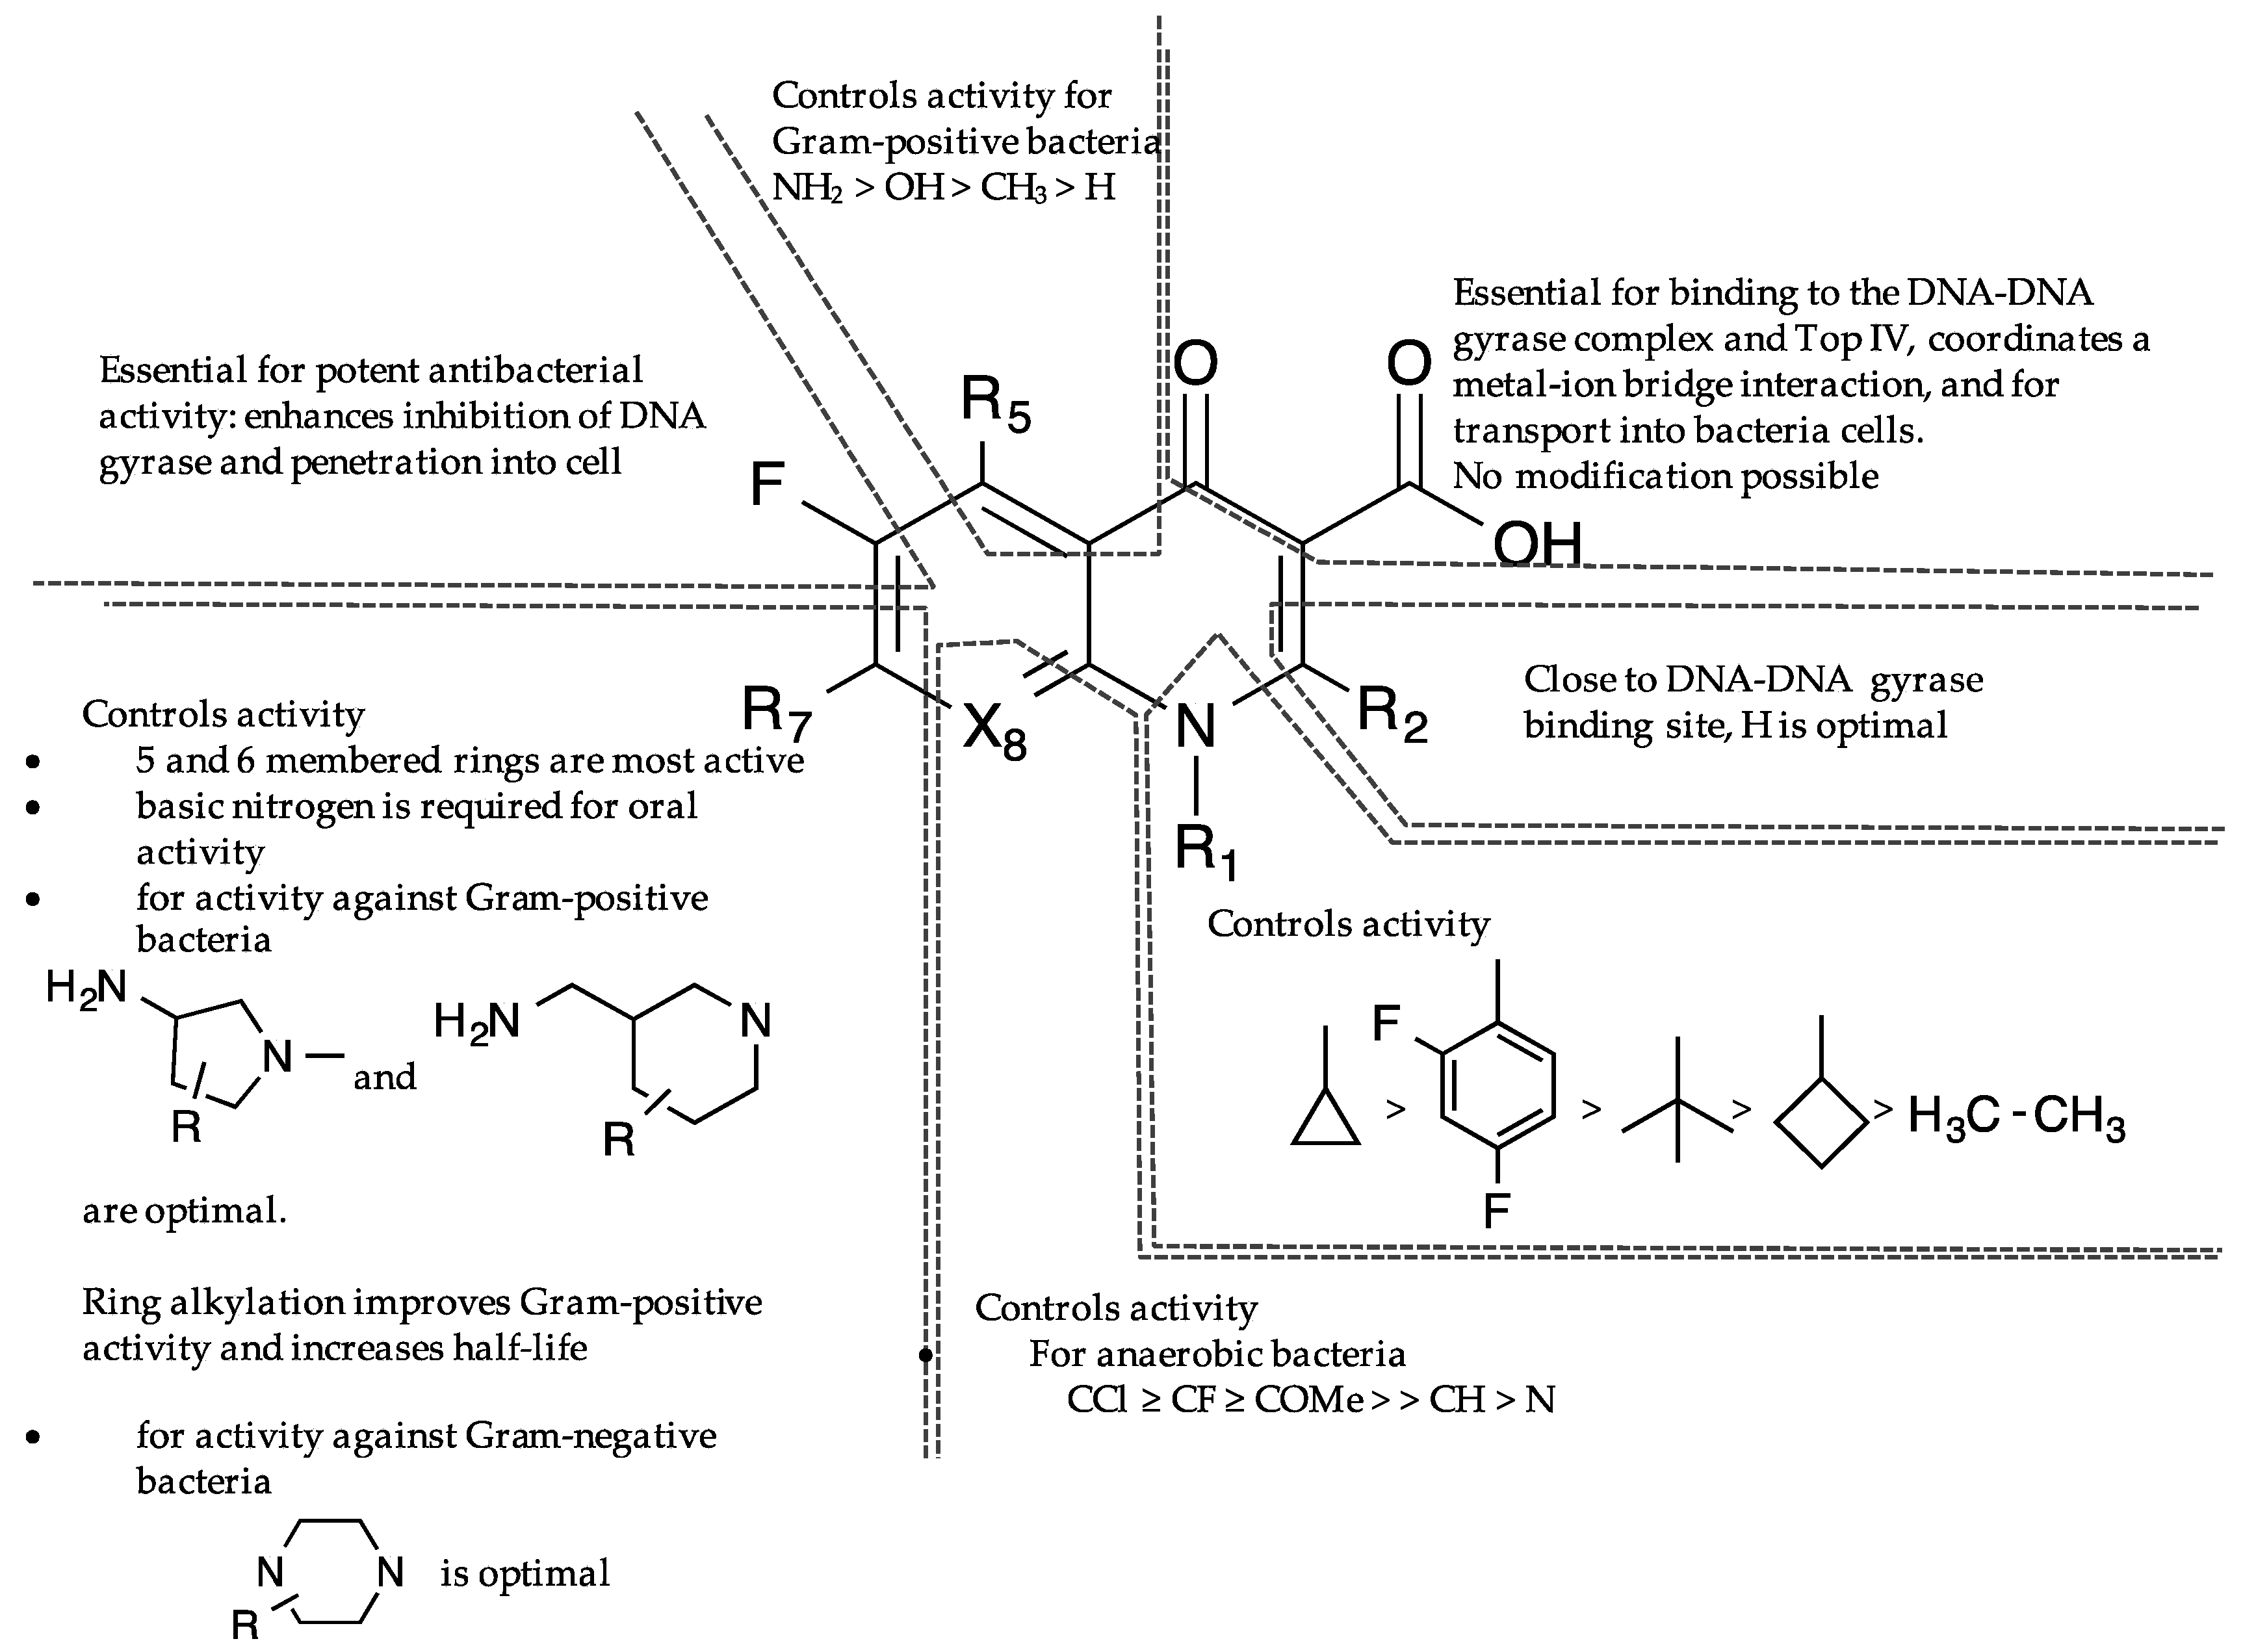 levetiracetam structure activity relationship for quinolones